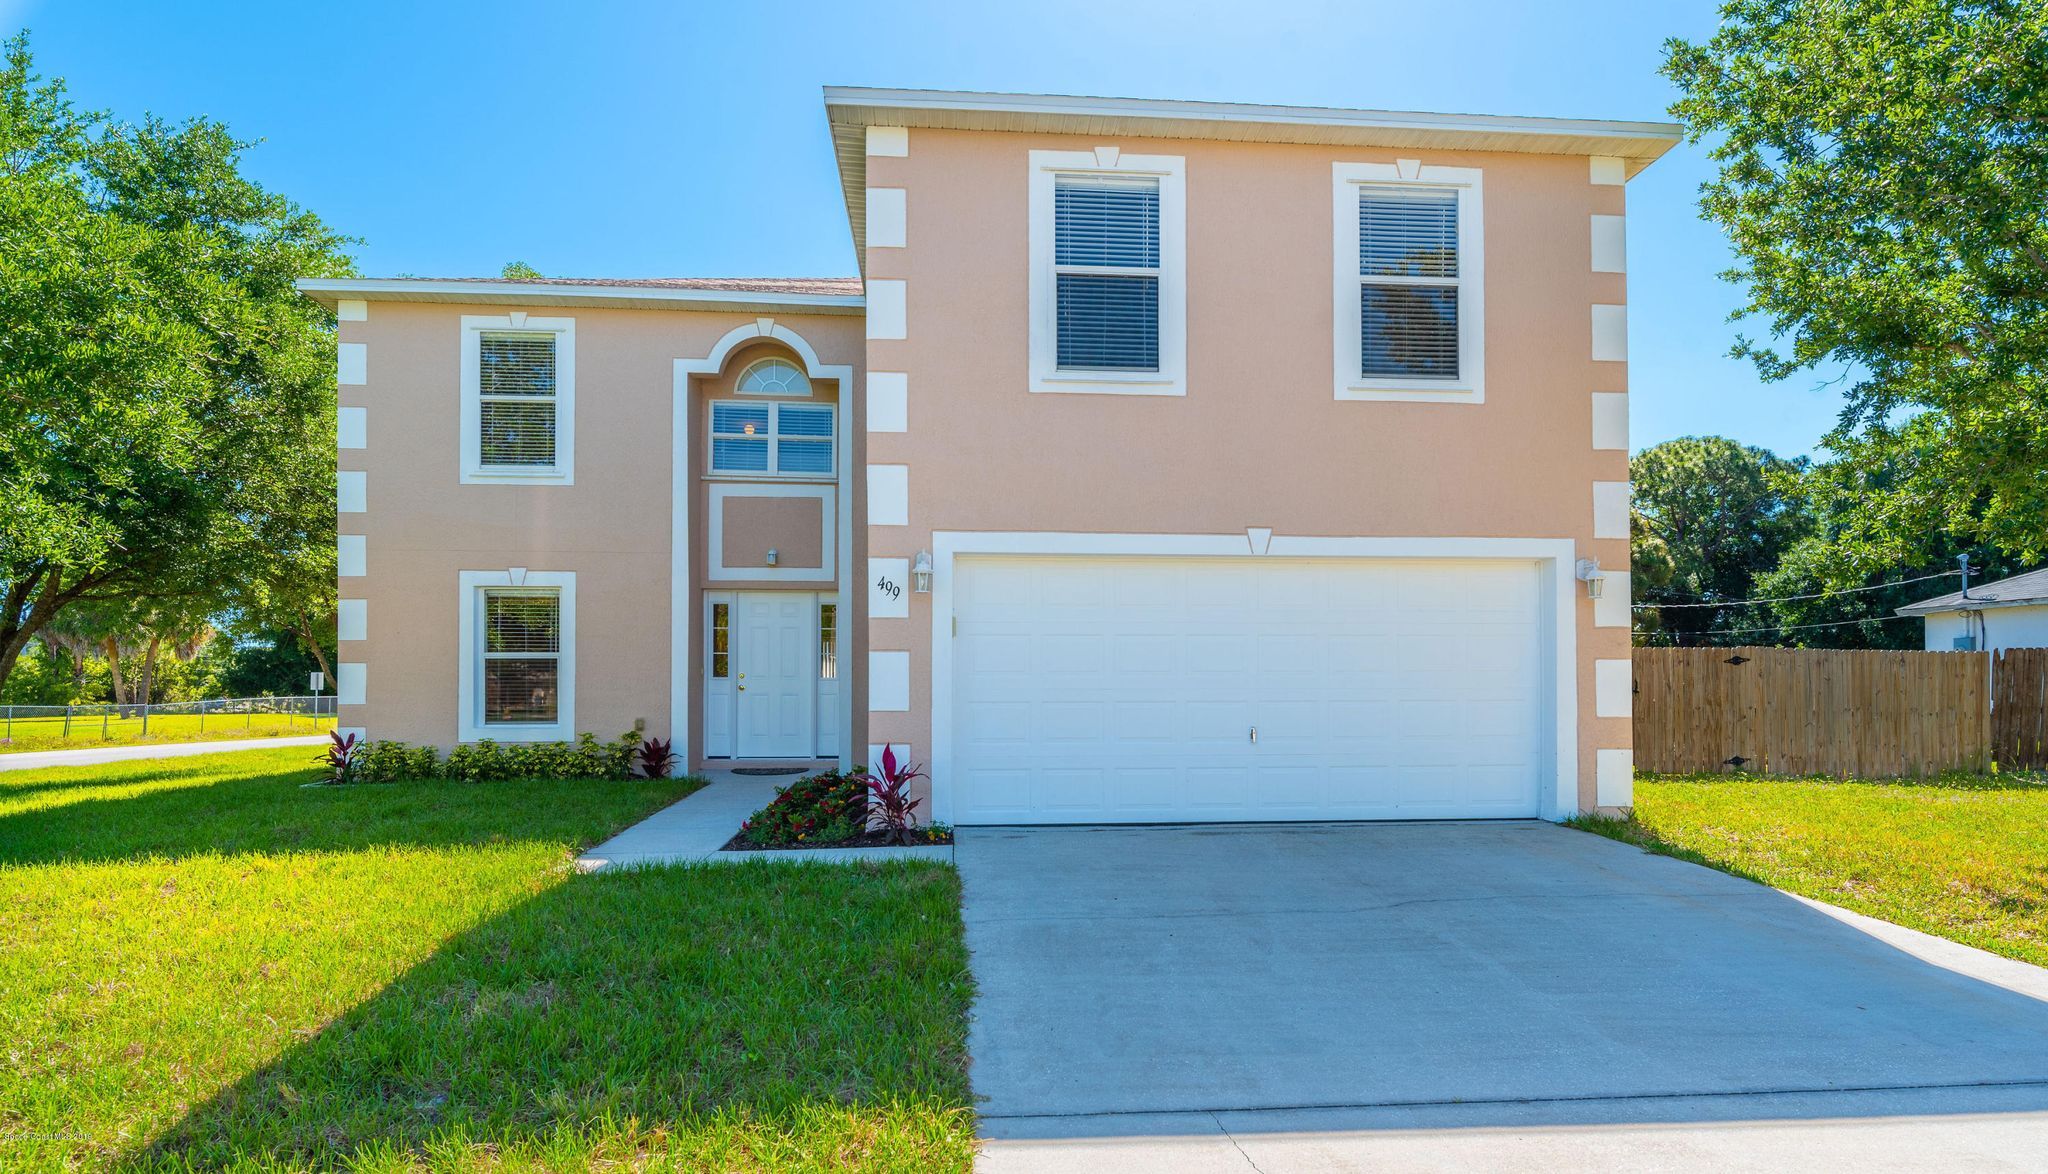 Prime 499 Borraclough Ave Nw Palm Bay Fl 32907 4 Bed 3 Bath Single Family Home Mls 842800 38 Photos Trulia Download Free Architecture Designs Scobabritishbridgeorg